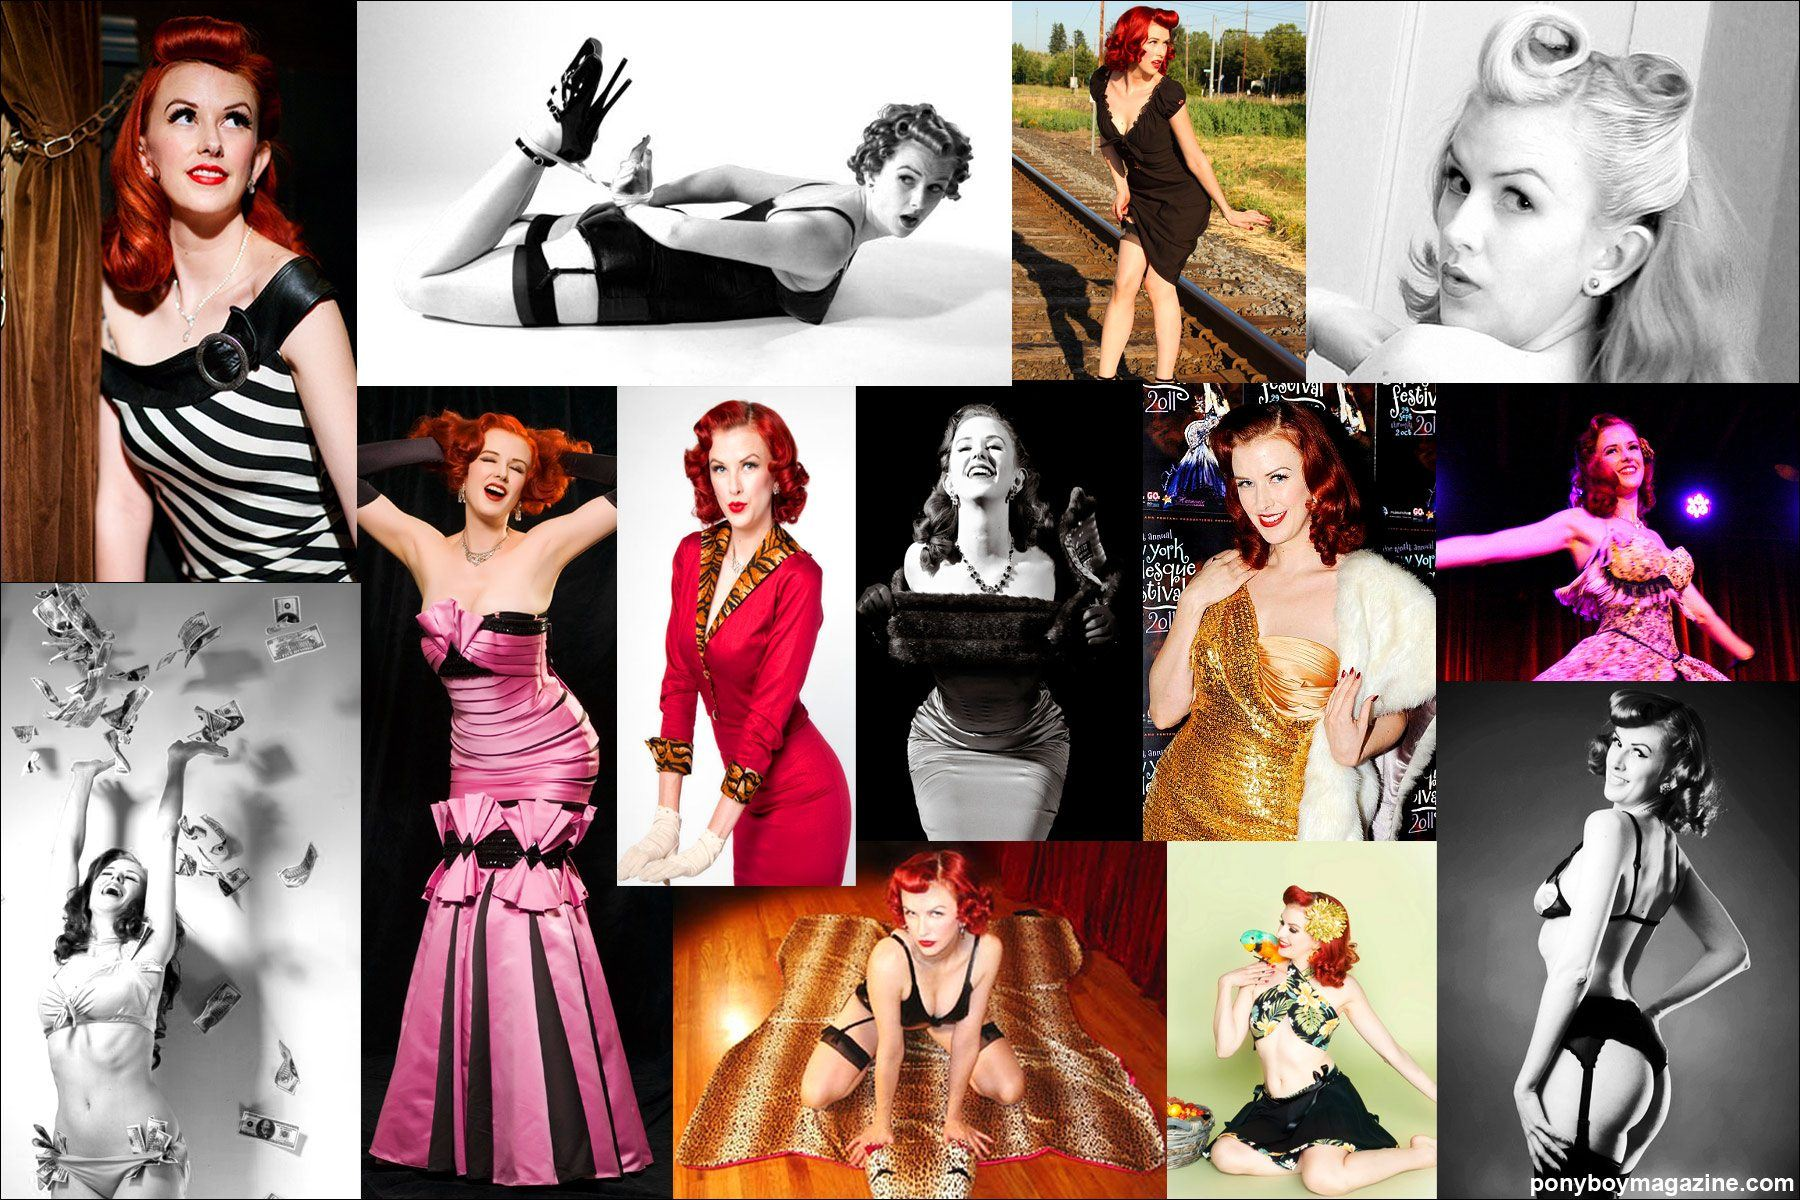 Photo collage of pin-up model Bettina May for Ponyboy Magazine.